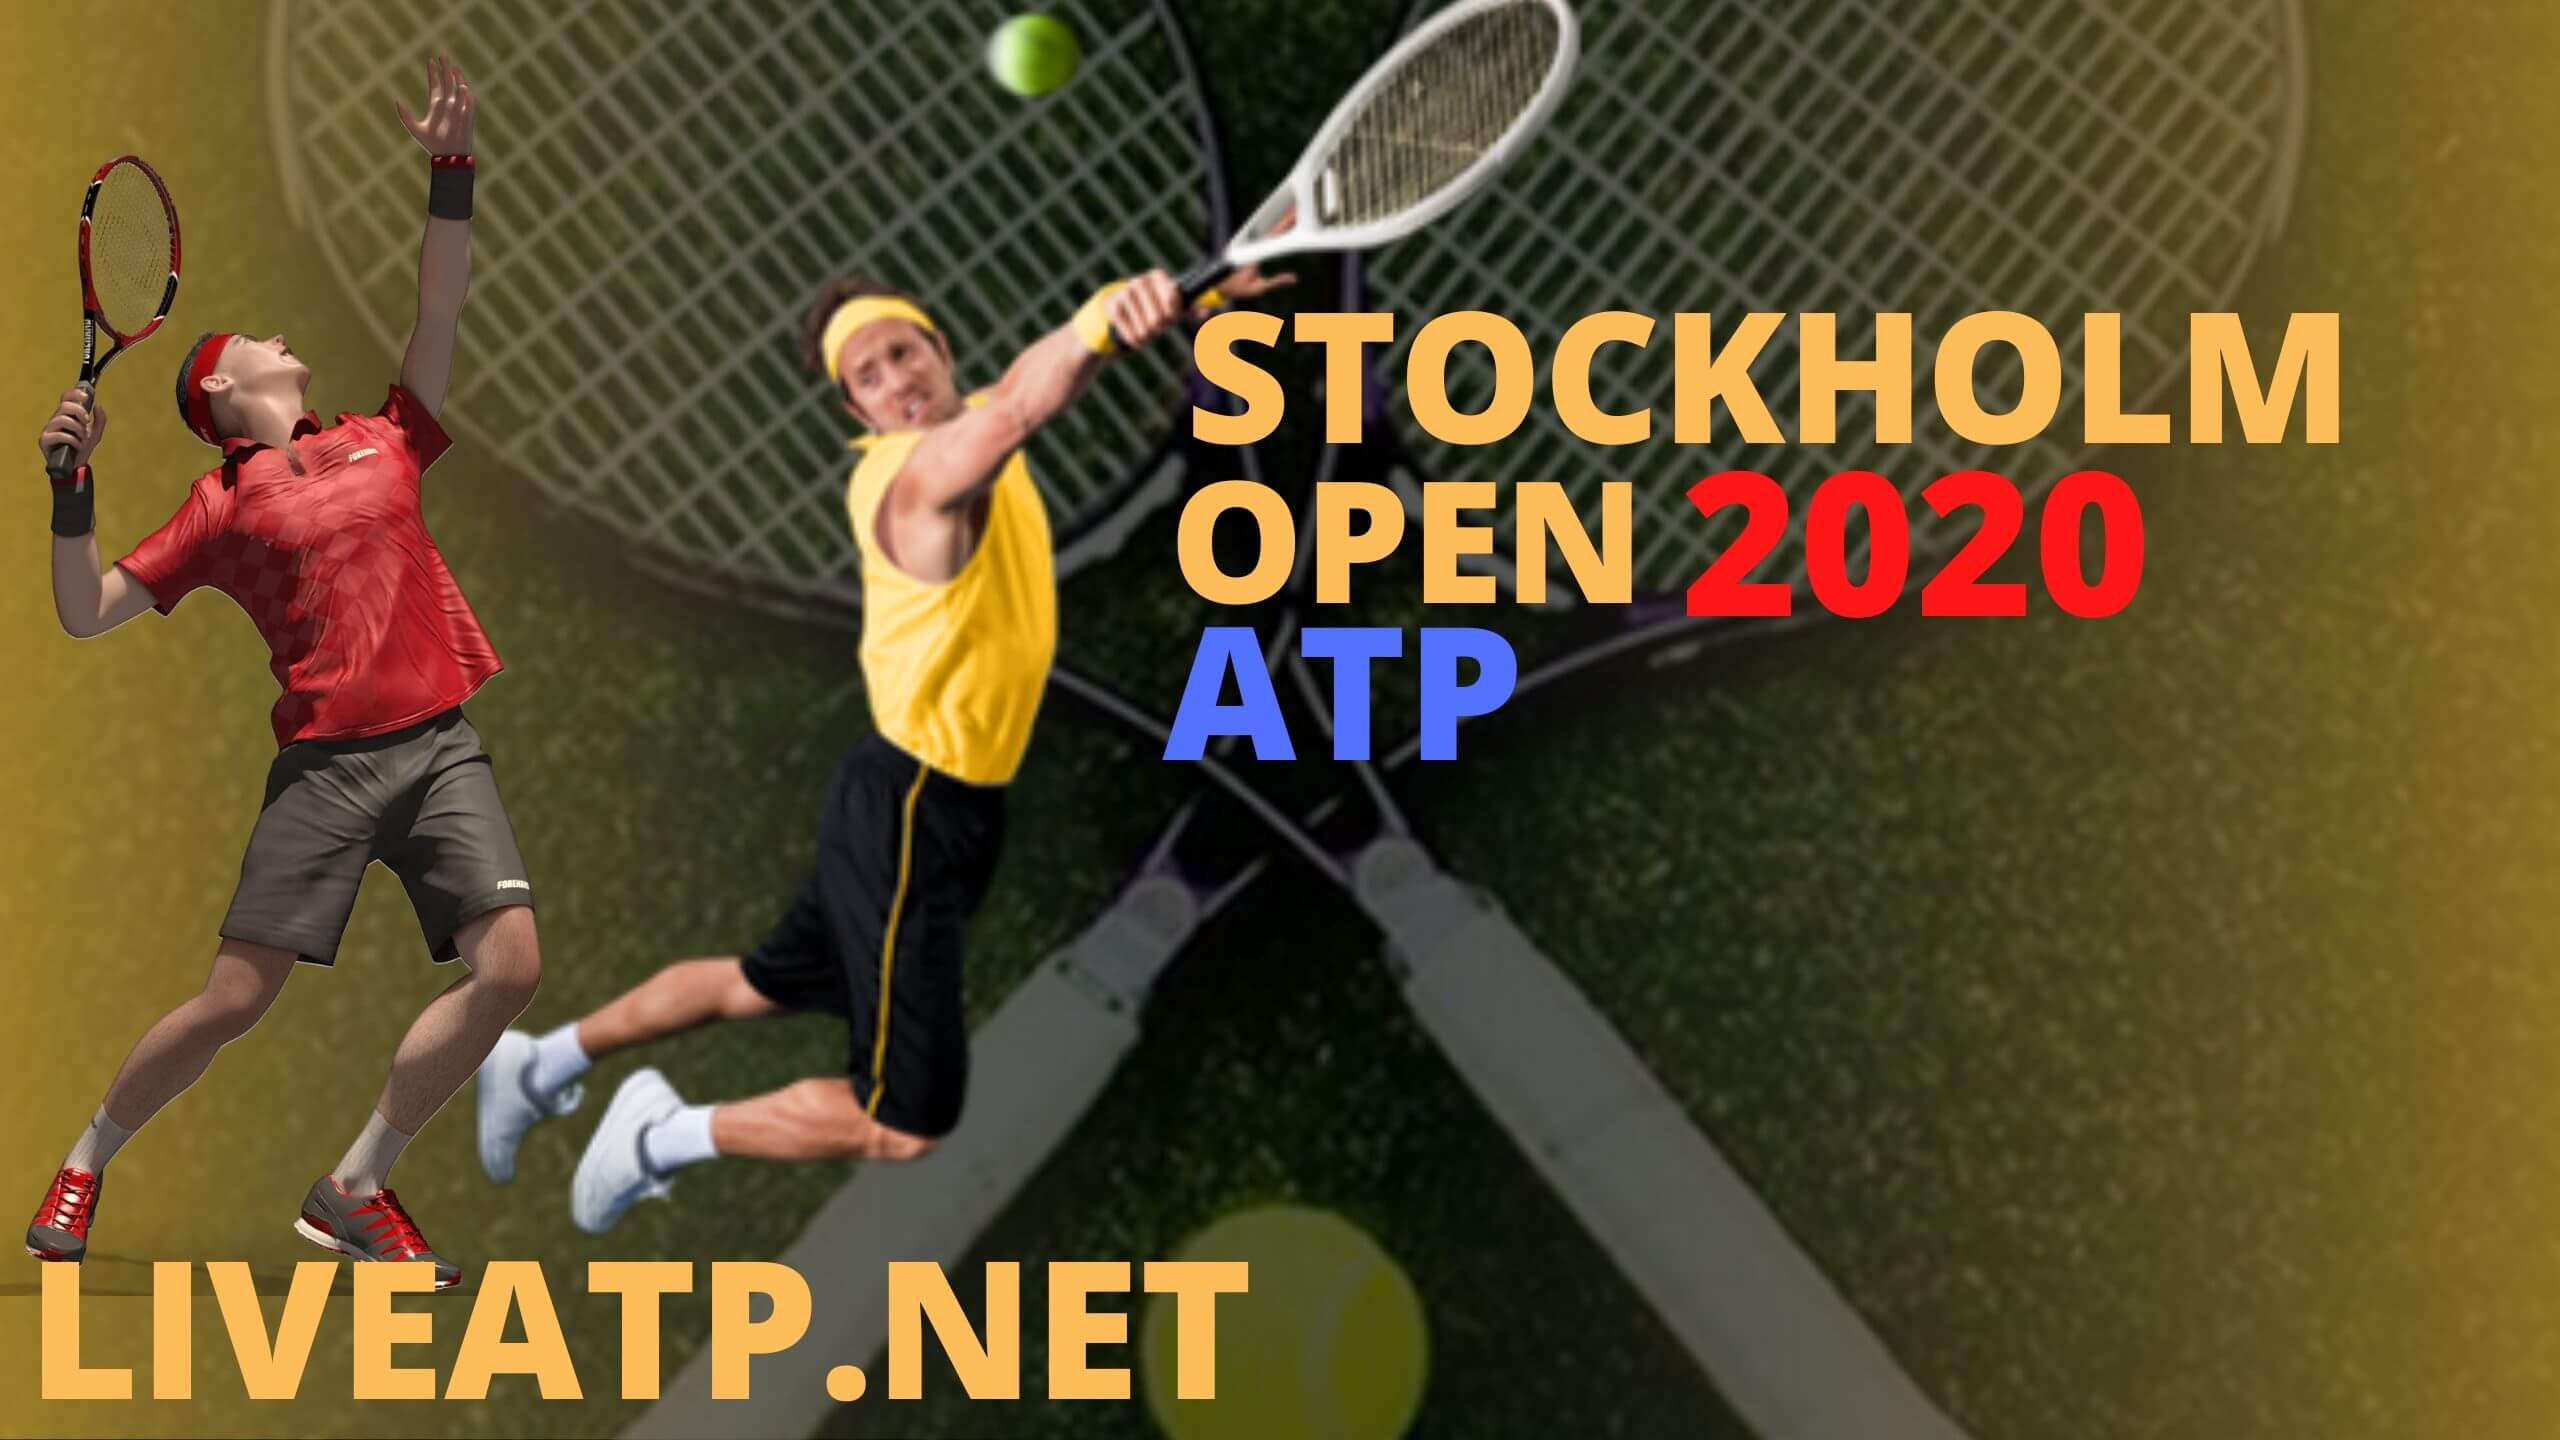 Stockholm Open Live Stream 2020 | Day 2